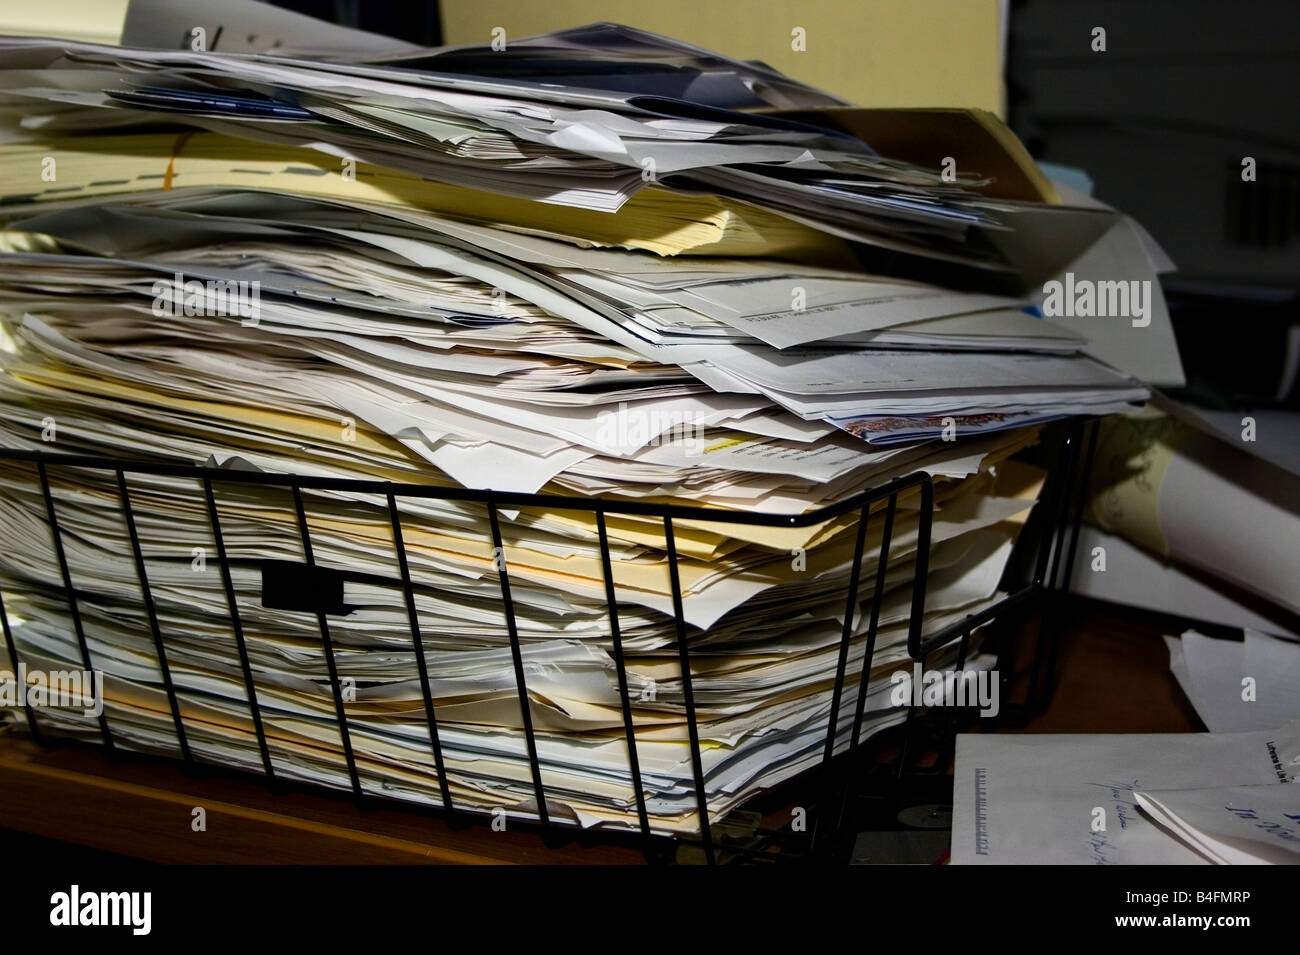 A pile of papers and file folders stacked to overflowing in a black wire basket. - Stock Image